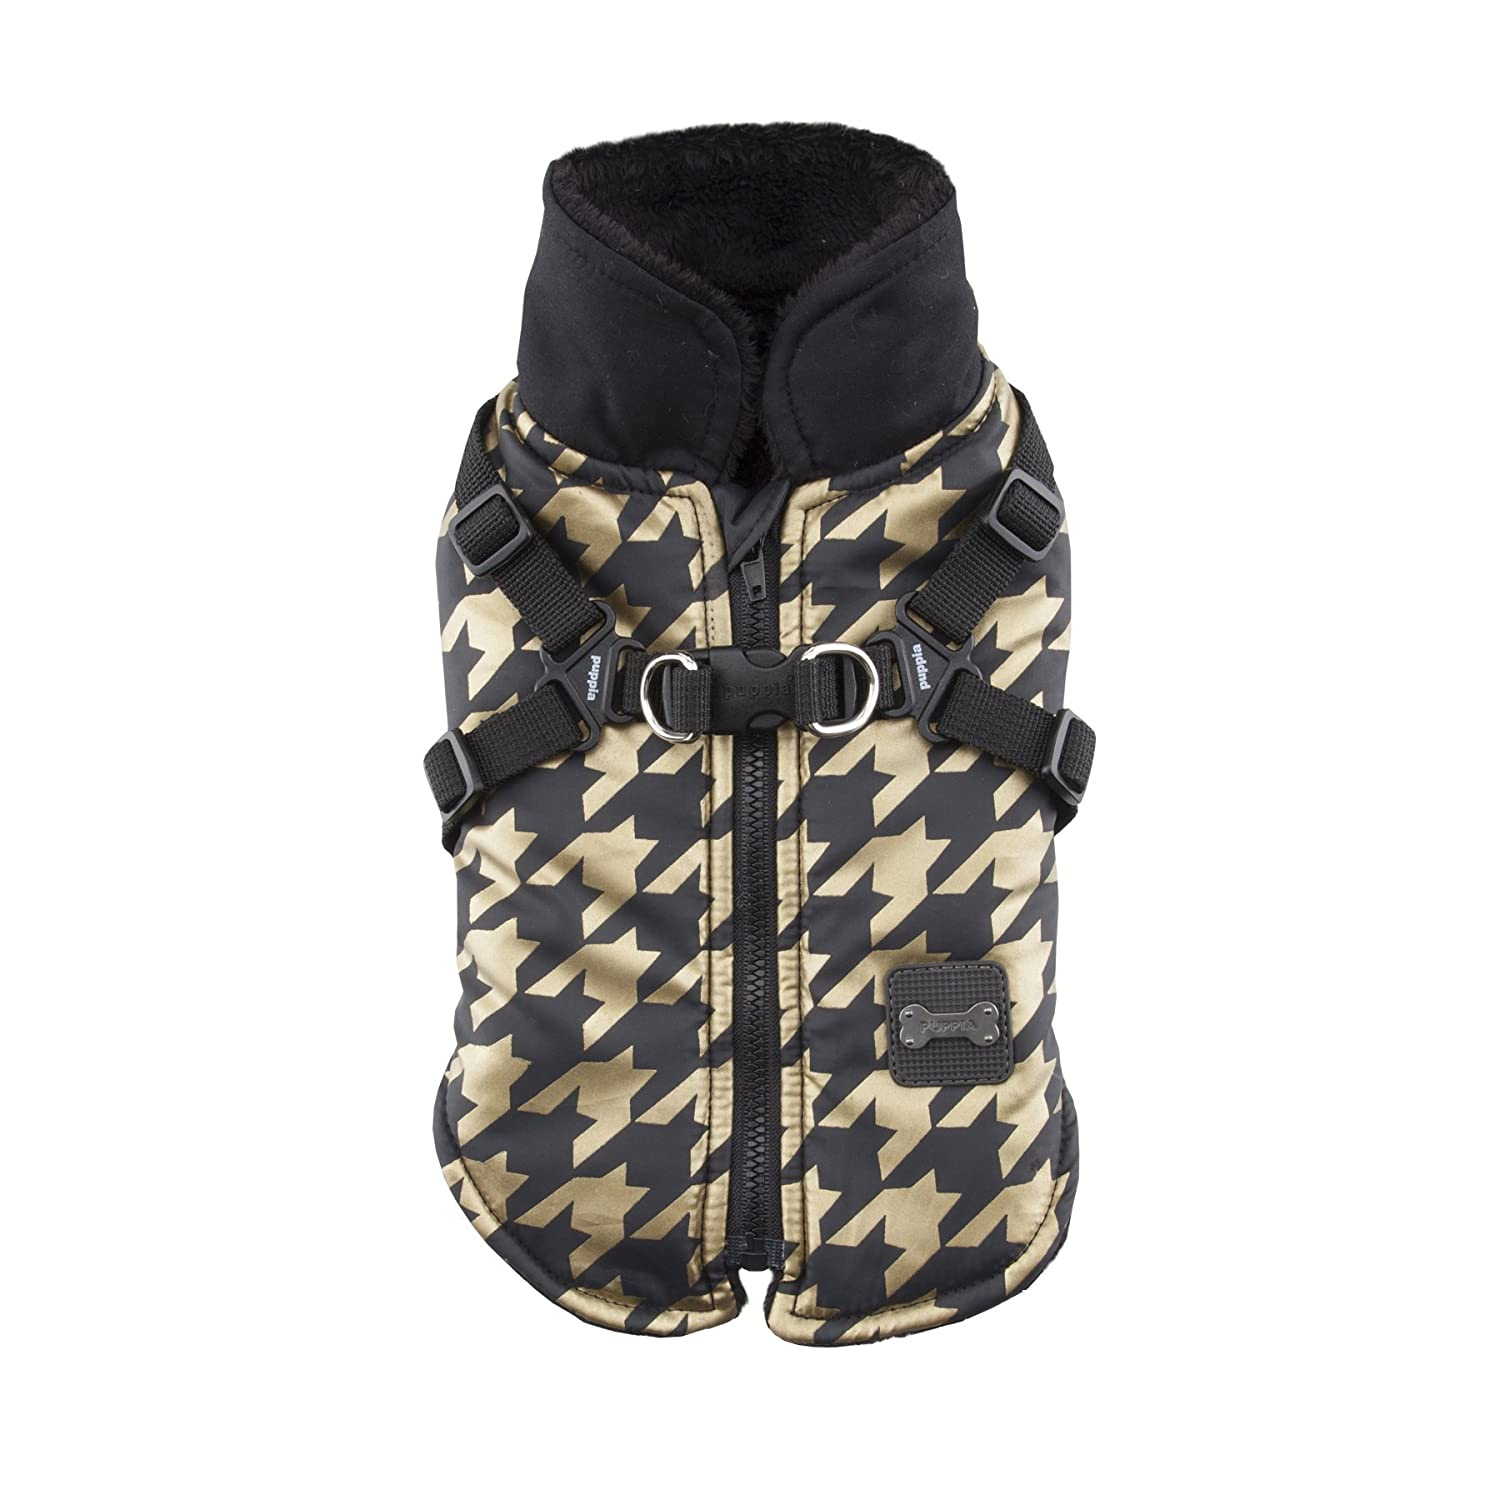 Puppia Dogstooth Winter Fleece Vest, Small, Black